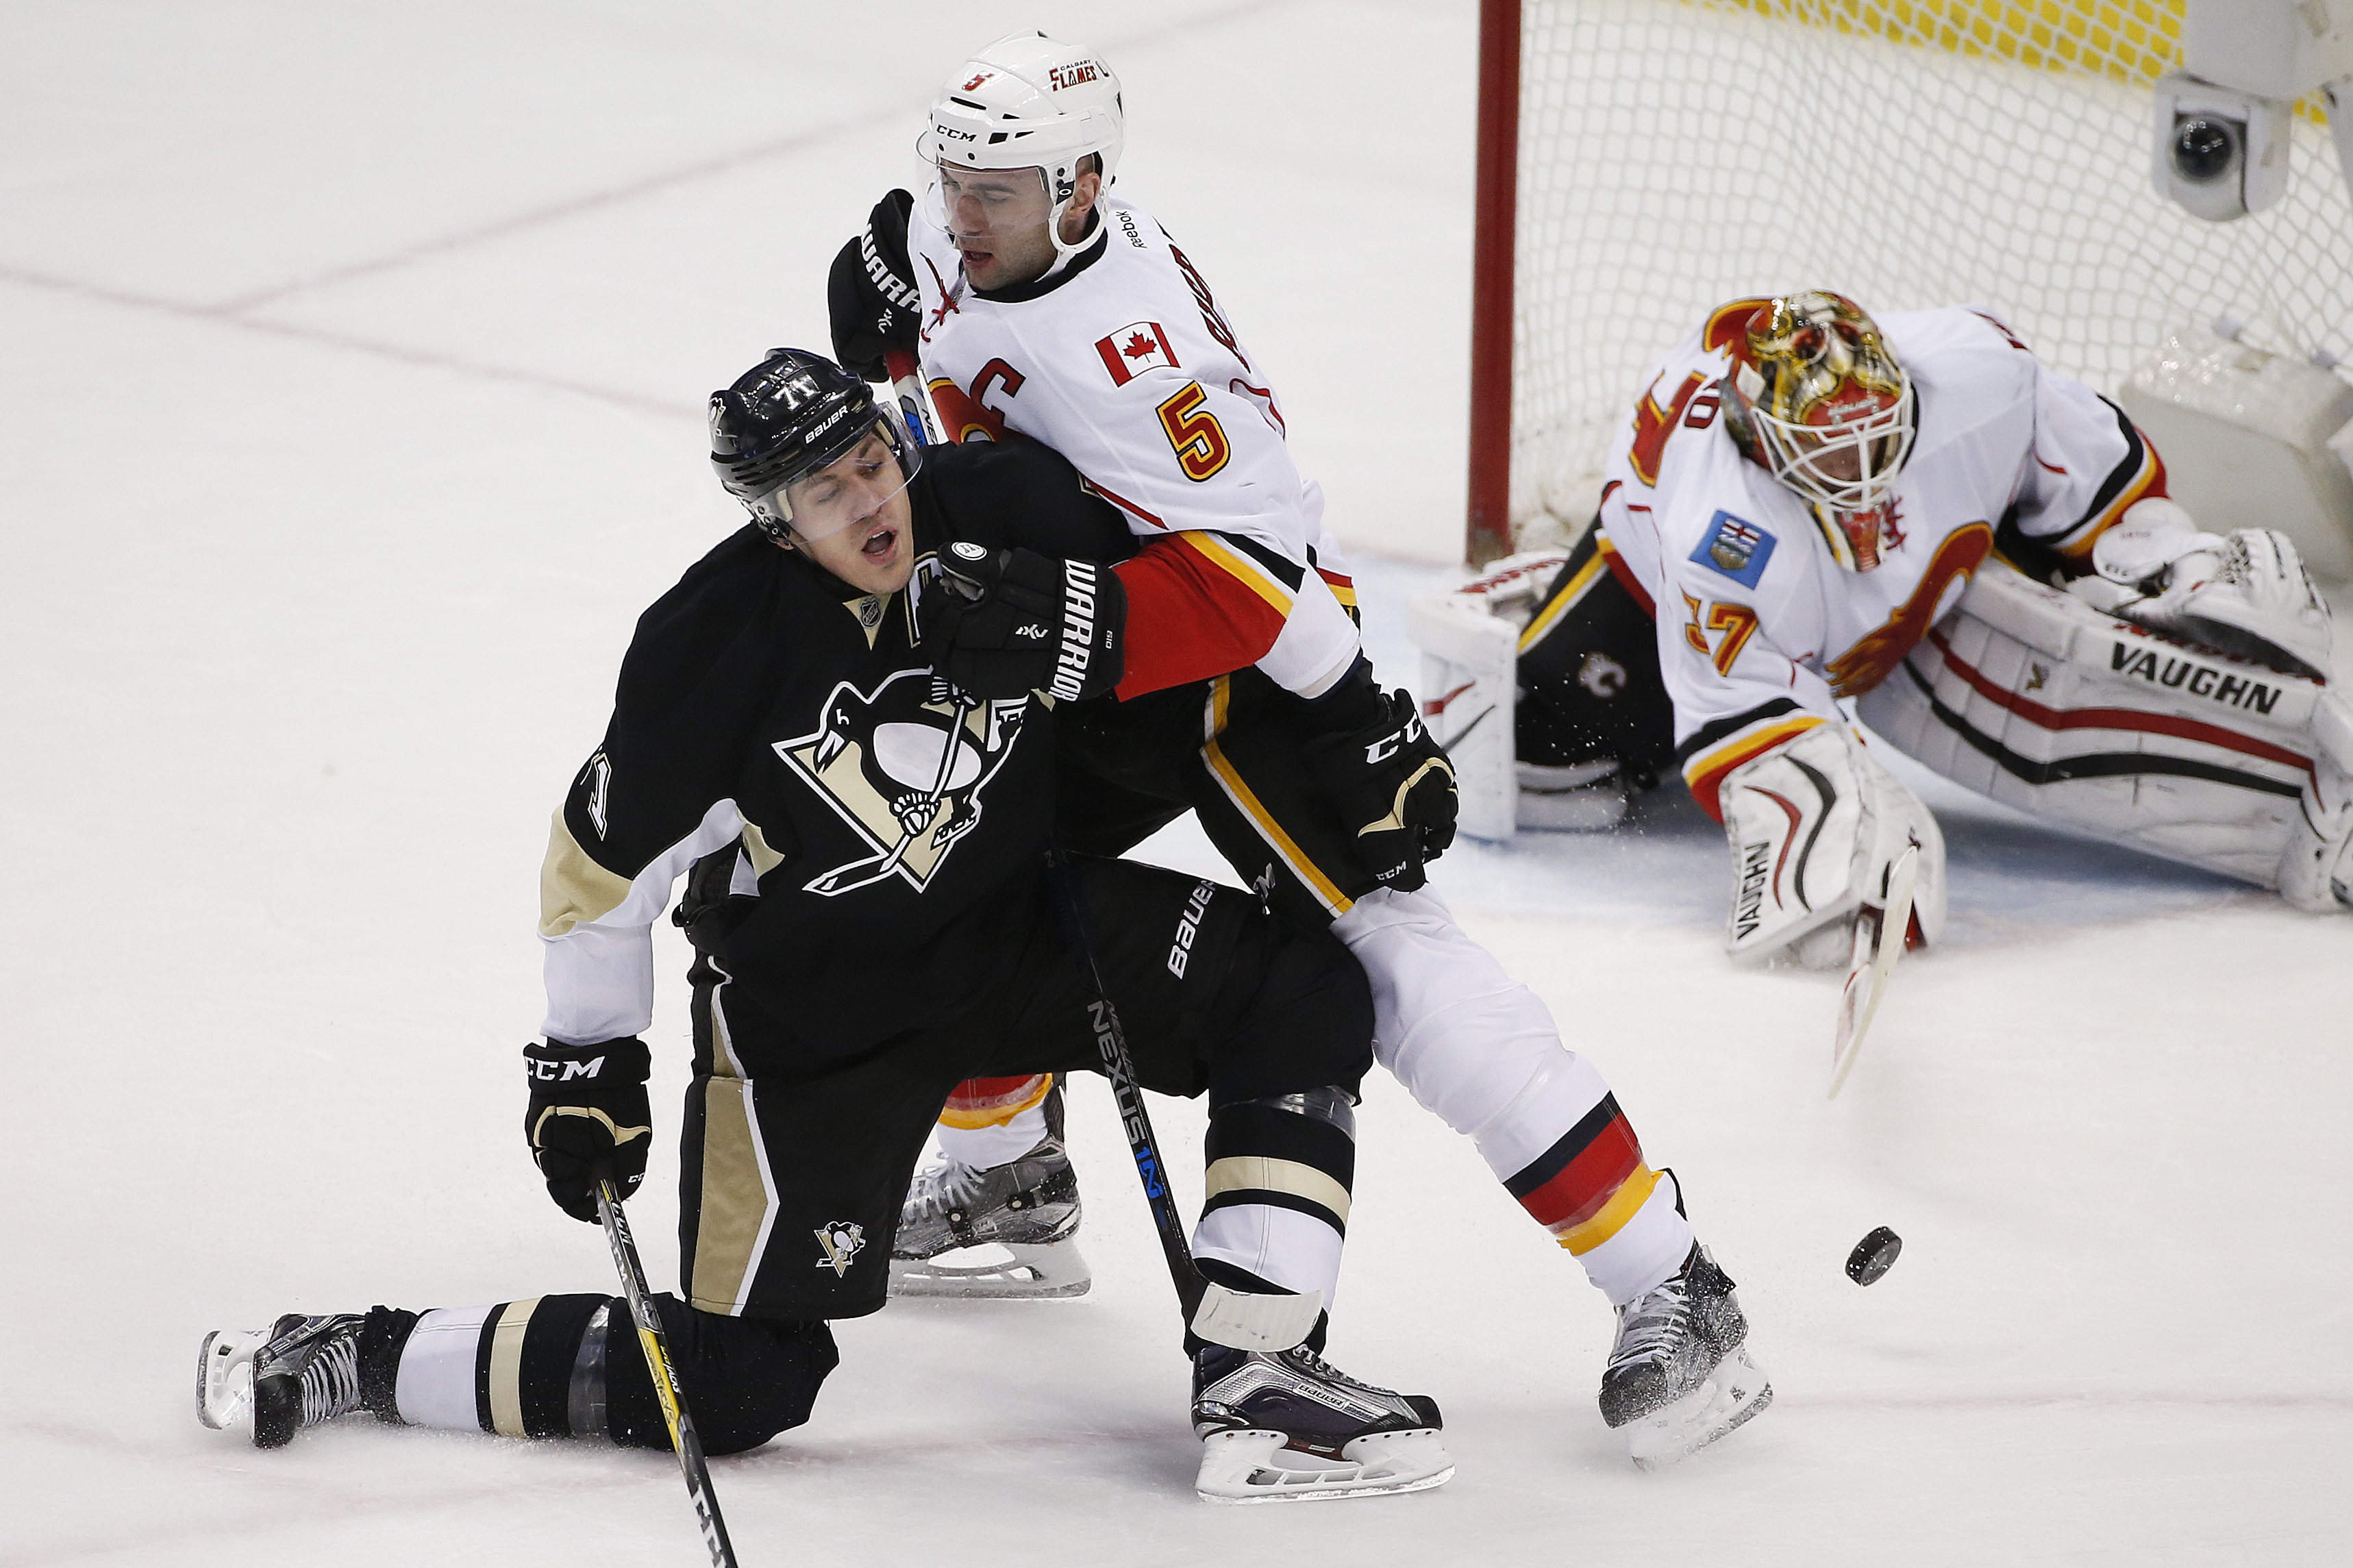 Pittsburgh Penguins' Evgeni Malkin (71) is knocked off the puck by Calgary Flames' Mark Giordano (5) in front of goalie Joni Ortio (37) during the first period of an NHL hockey game in Pittsburgh, Saturday, March 5, 2016. (AP Photo/Gene J. Puskar)